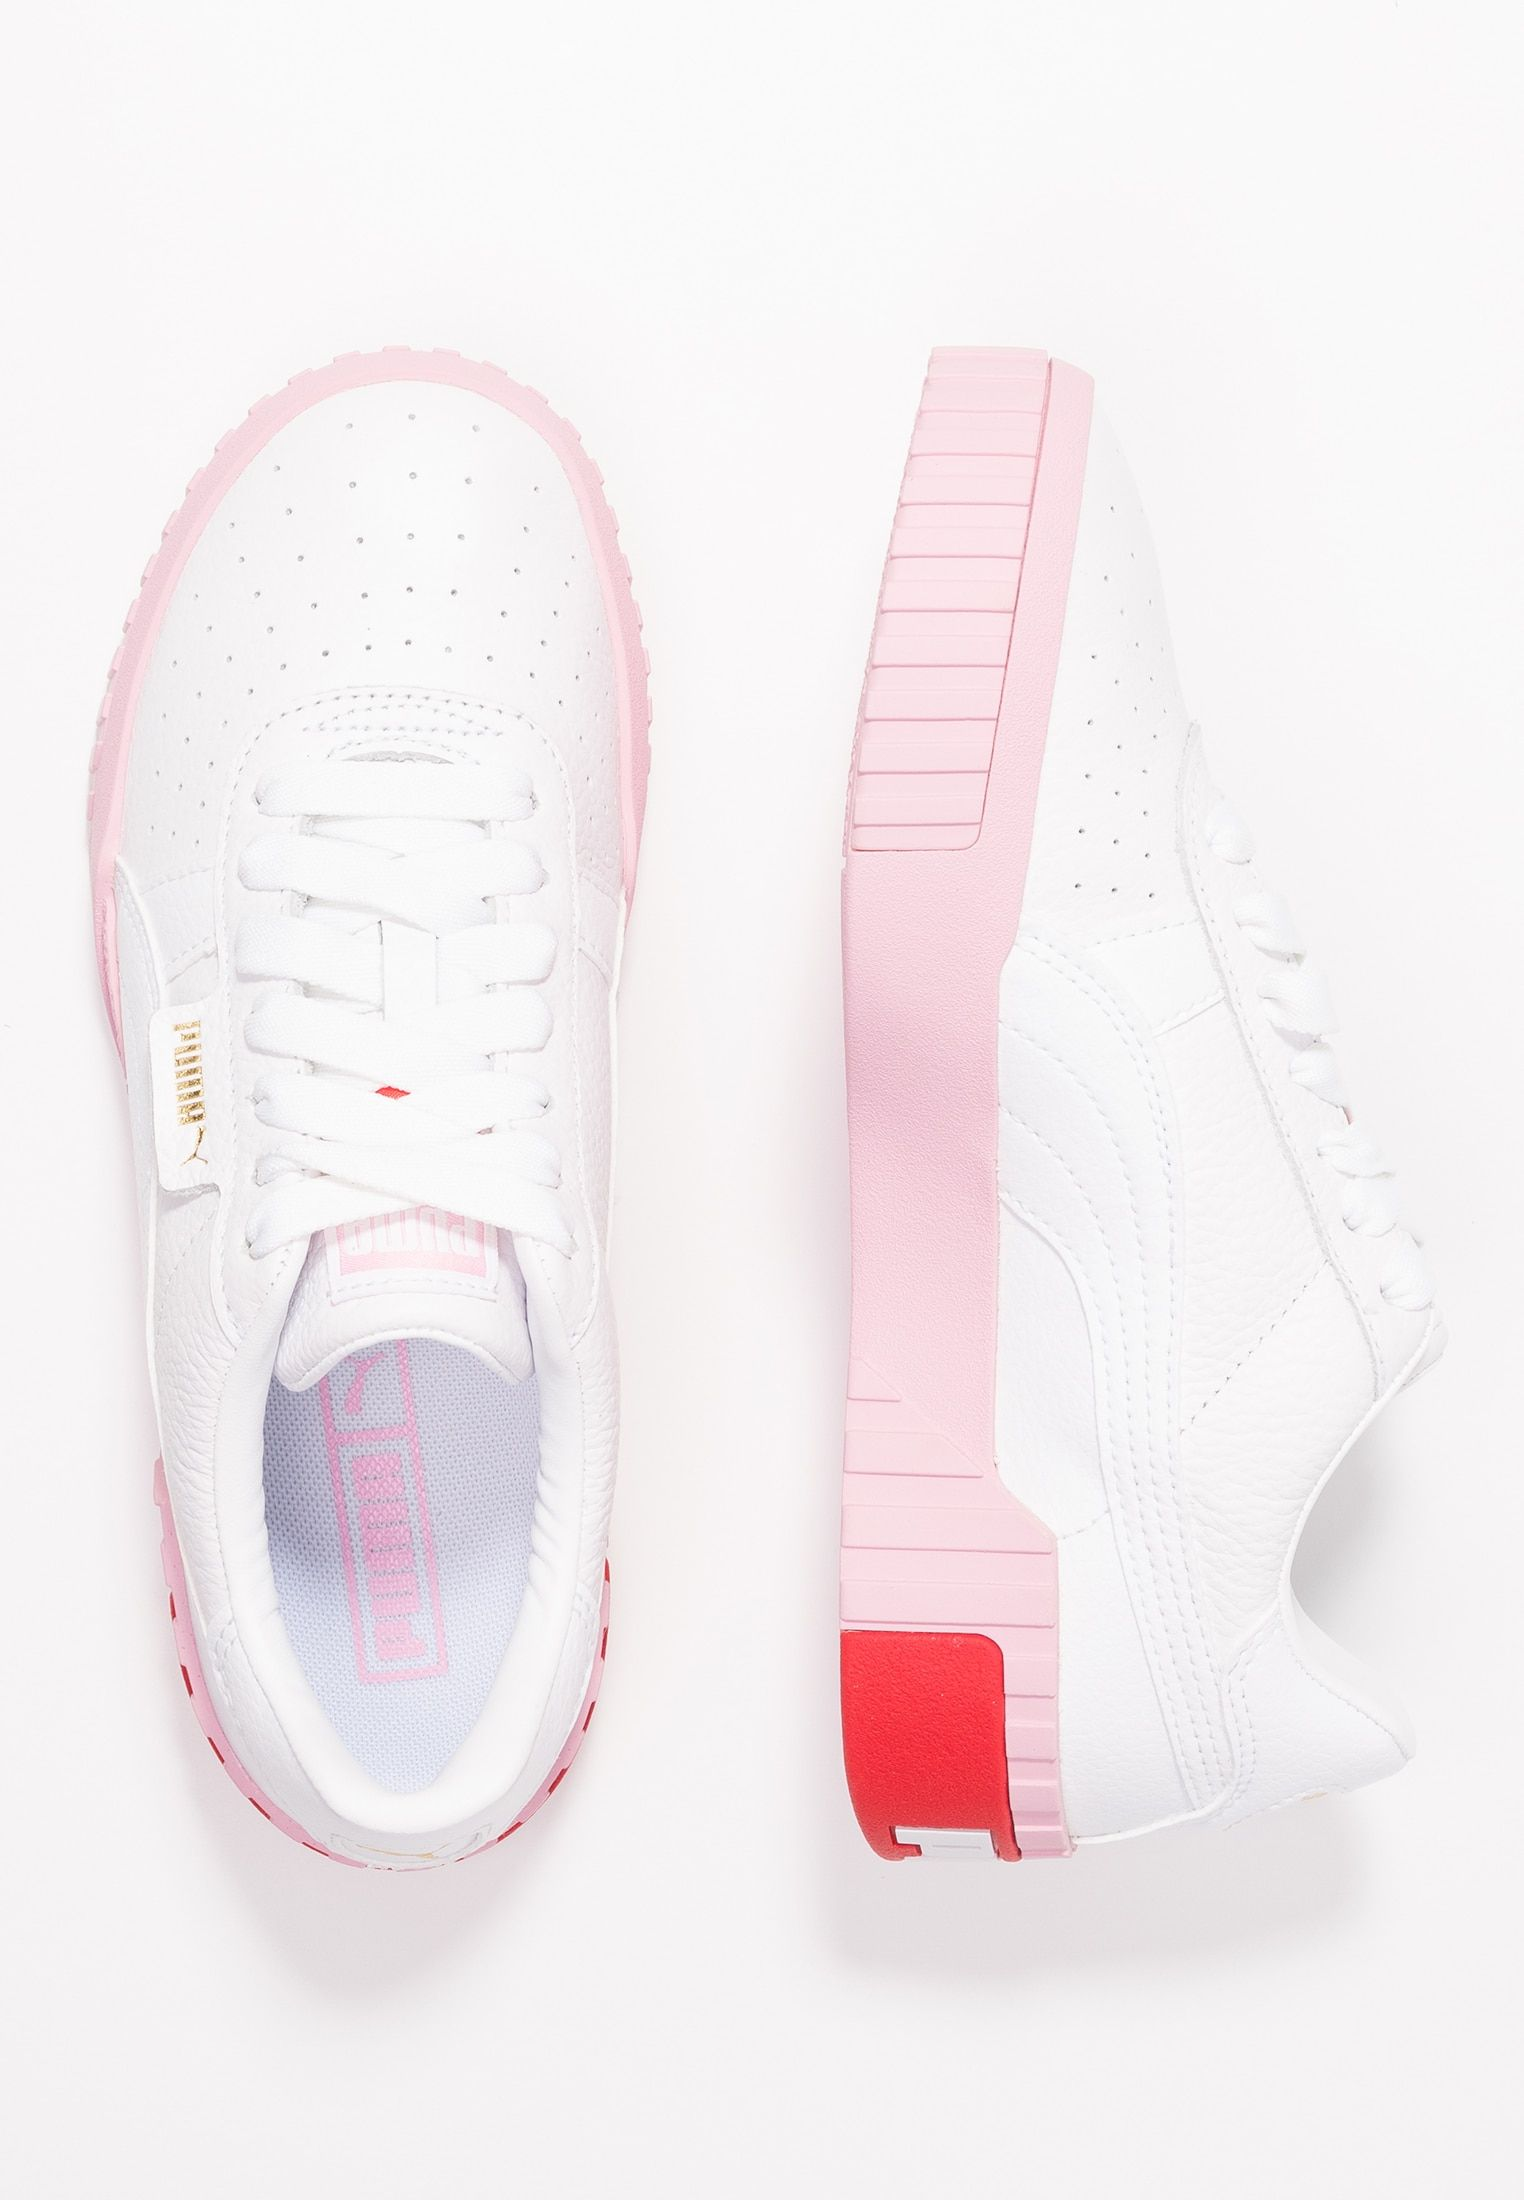 CALI - Baskets basses - white pale pink   ZALANDO.FR 🛒 in 2019 ... 78af157b9